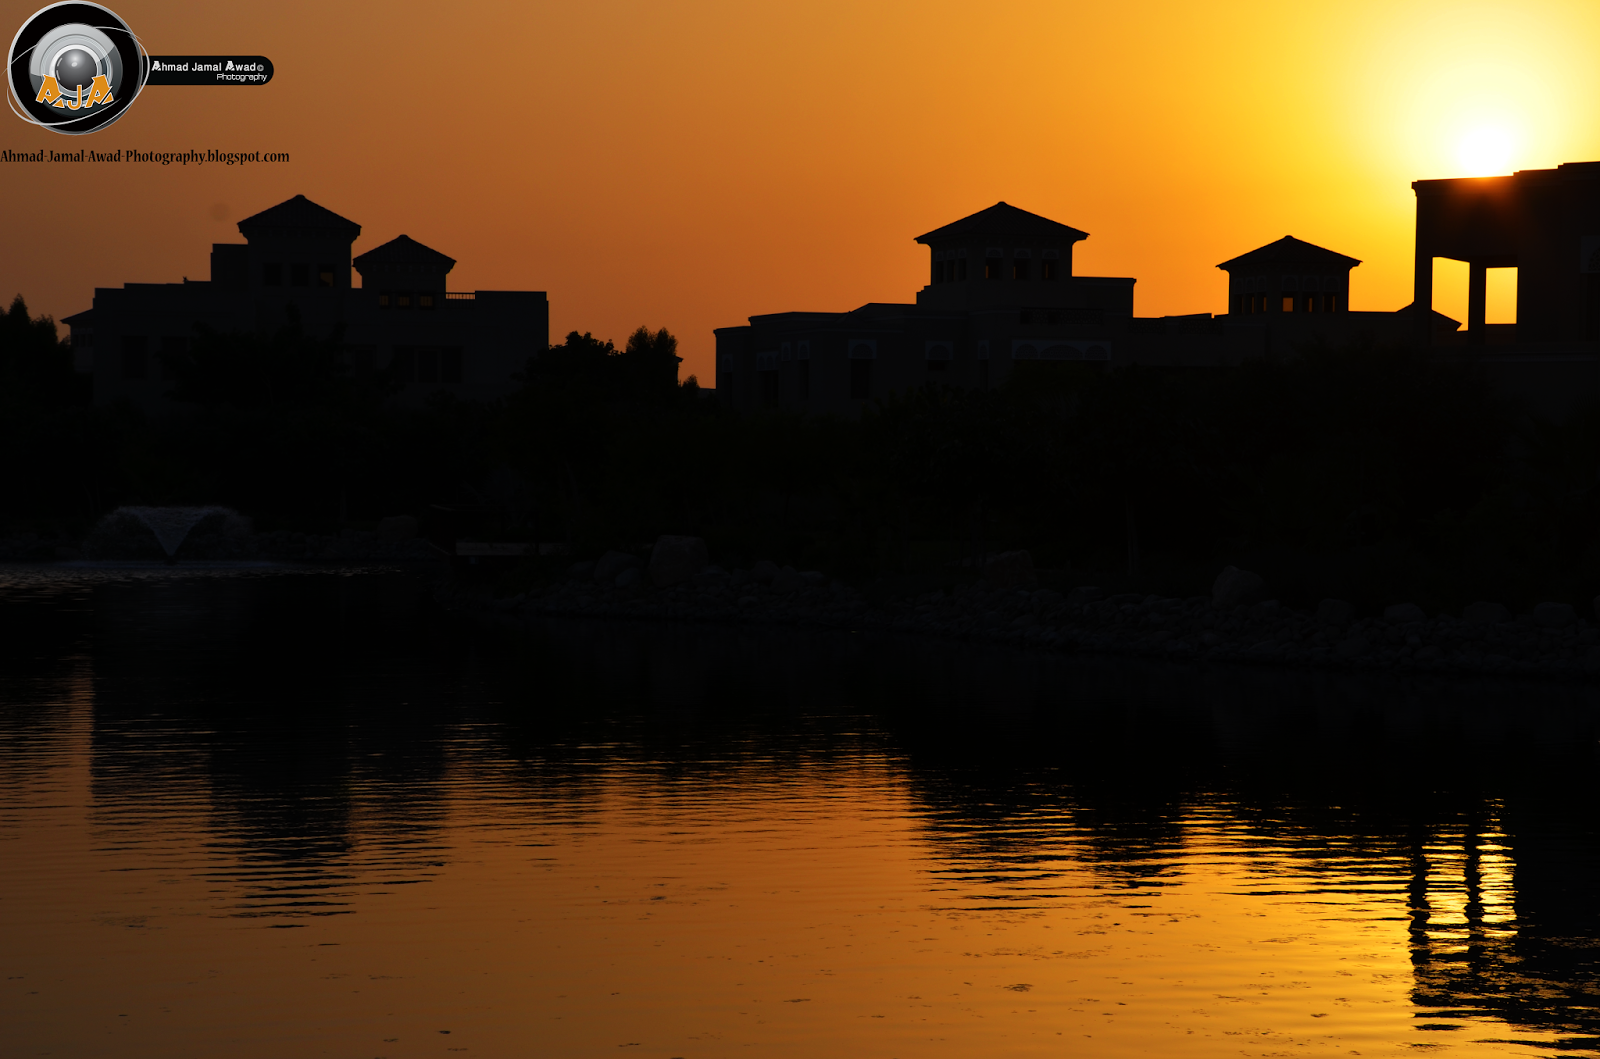 Sunset in Al-Barari